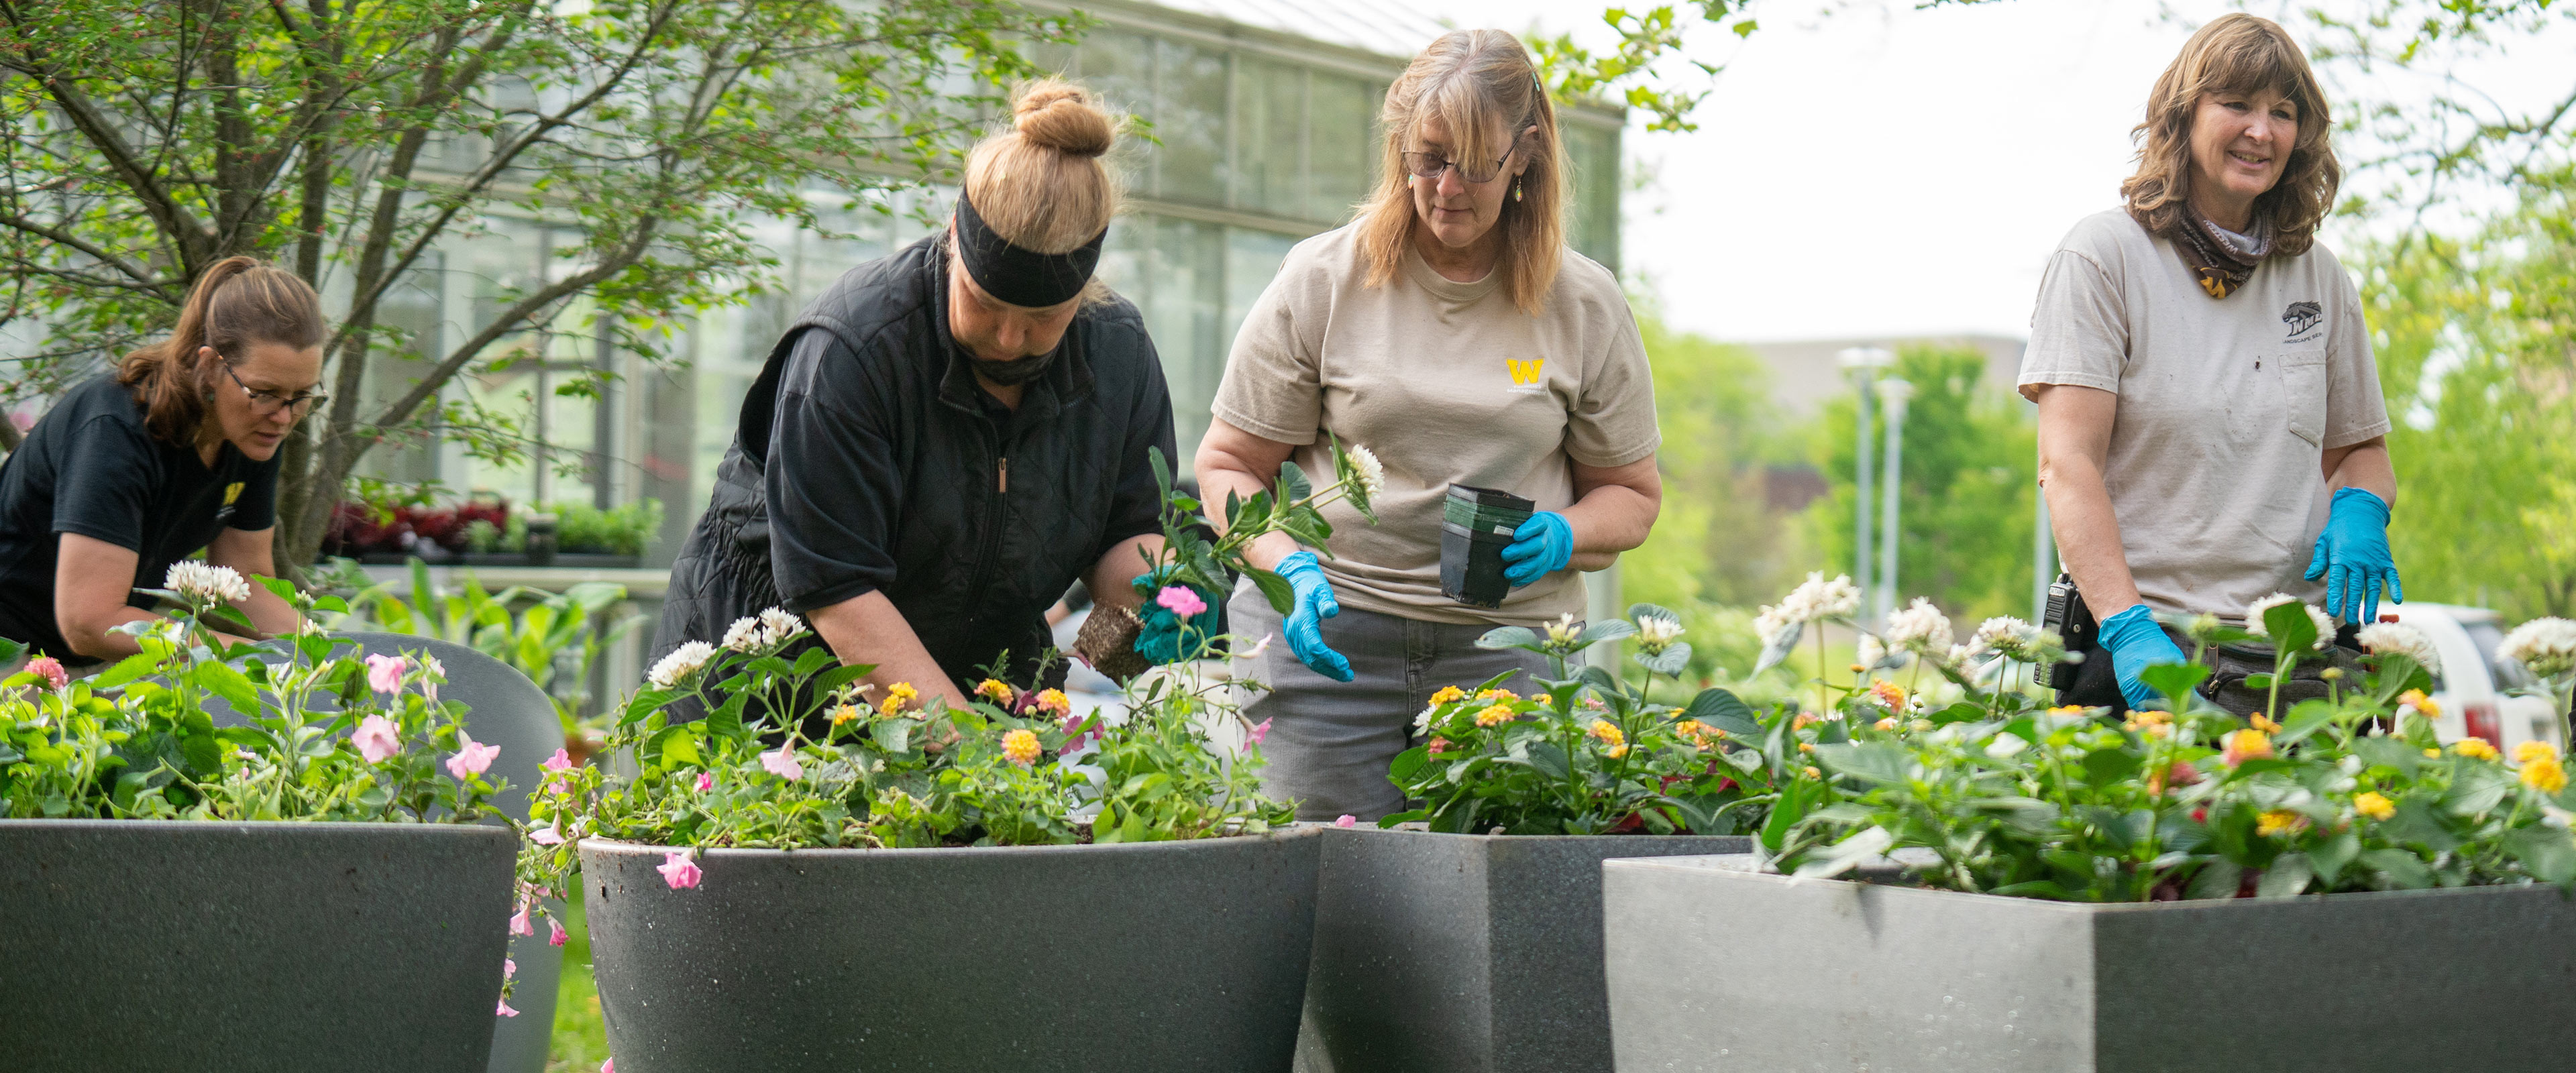 Four women planting flowers in planters.